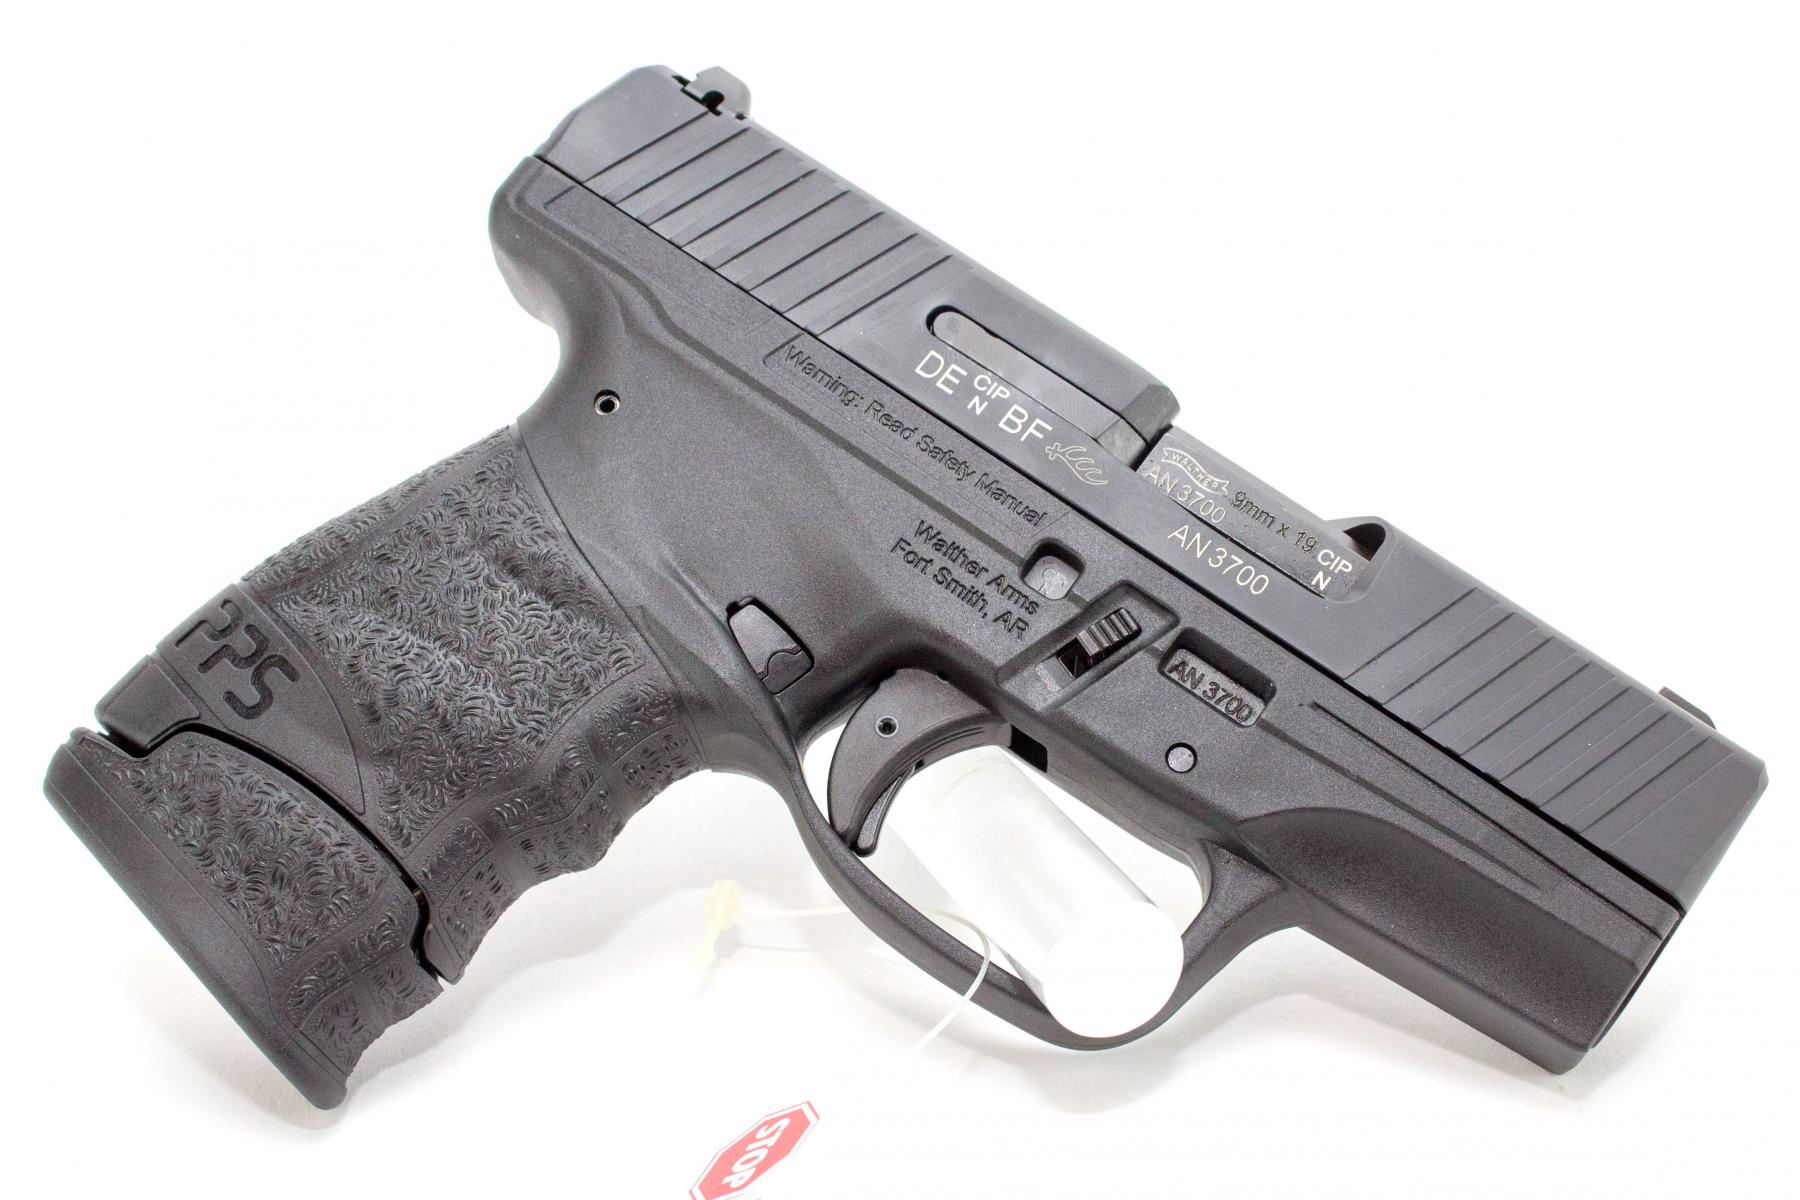 PPS M2 |9mm 3.2 Inch Barrel Black Finish Synthetic Grips, Includes 1 7-Round and 1 8-Round Magazine